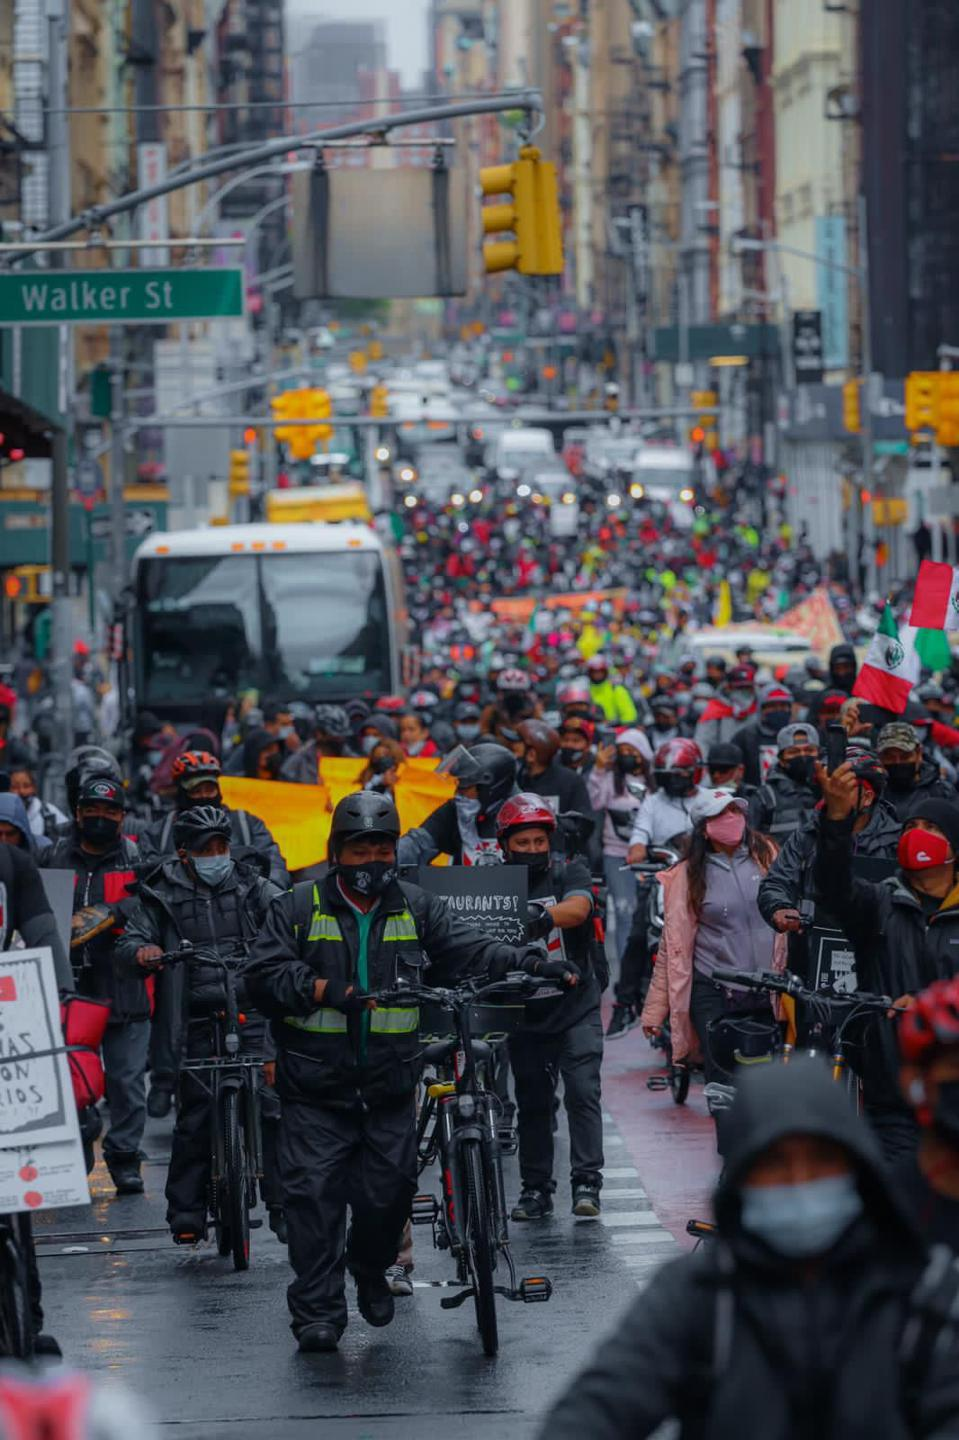 Thousands of delivery workers marching across New York City in a heavy downpour this April.